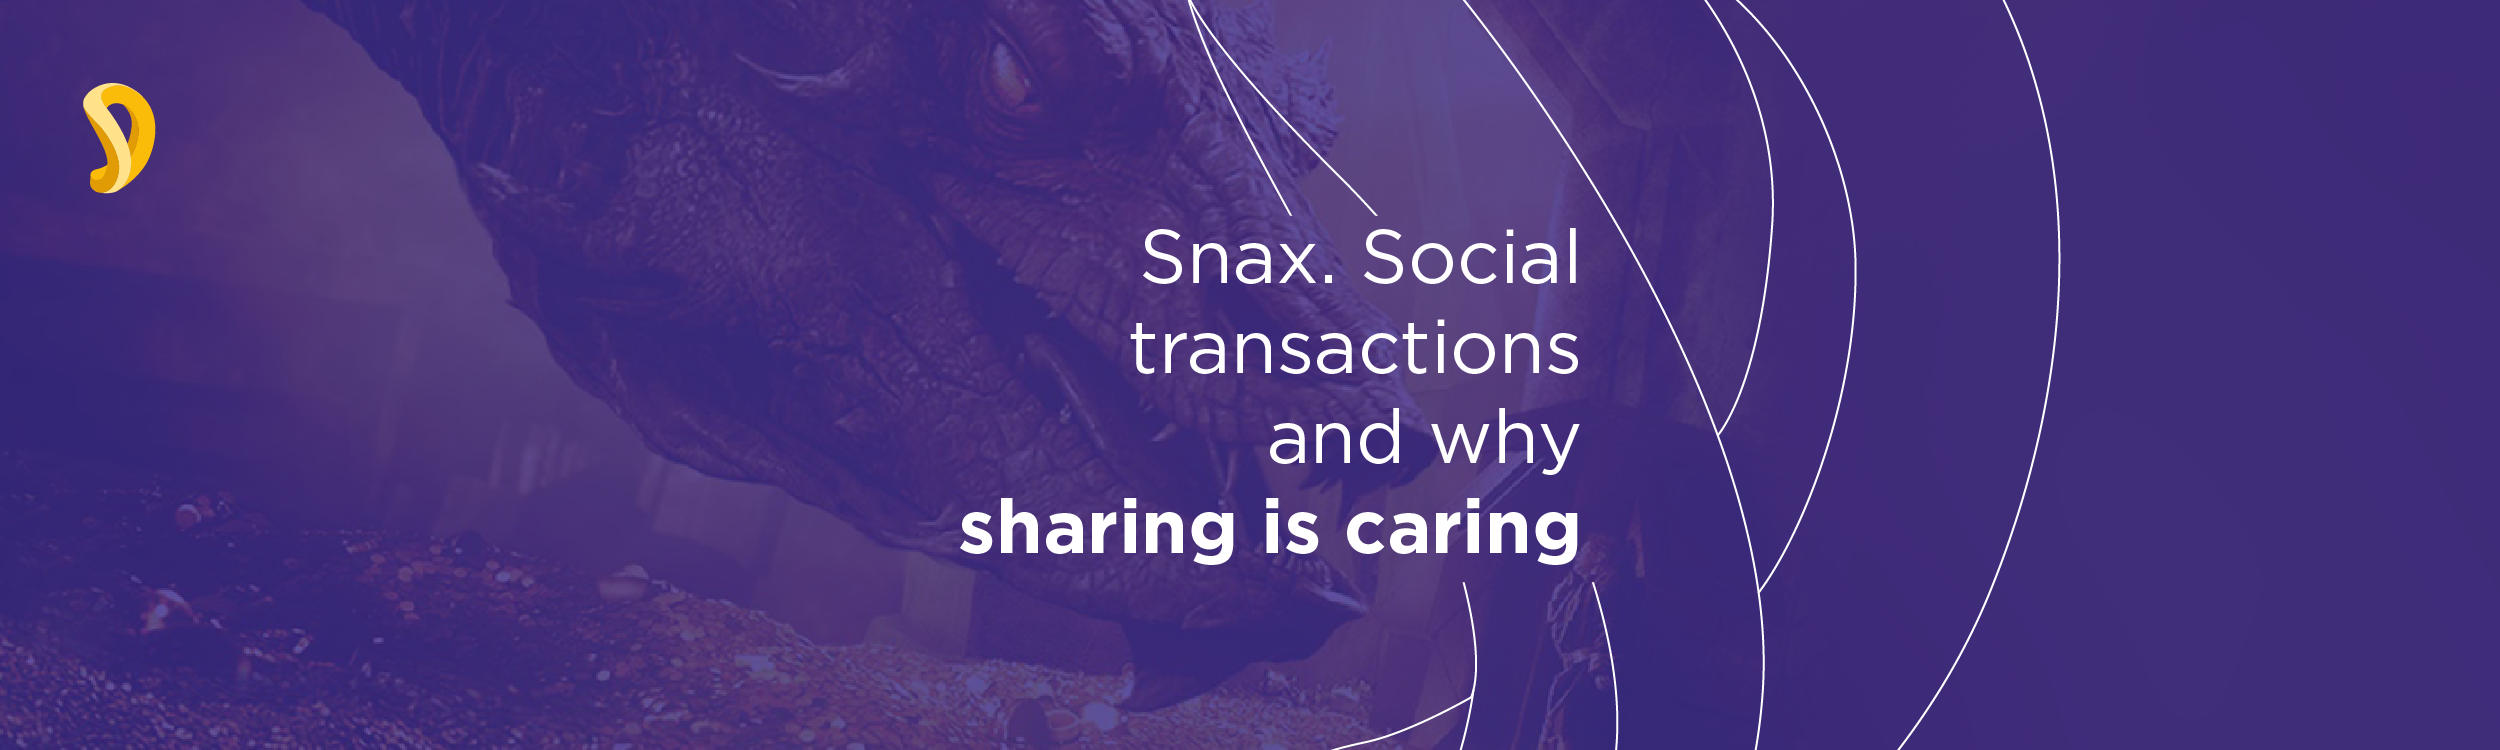 /snax-social-transaction-and-why-sharing-is-caring-afc32c8f1646 feature image